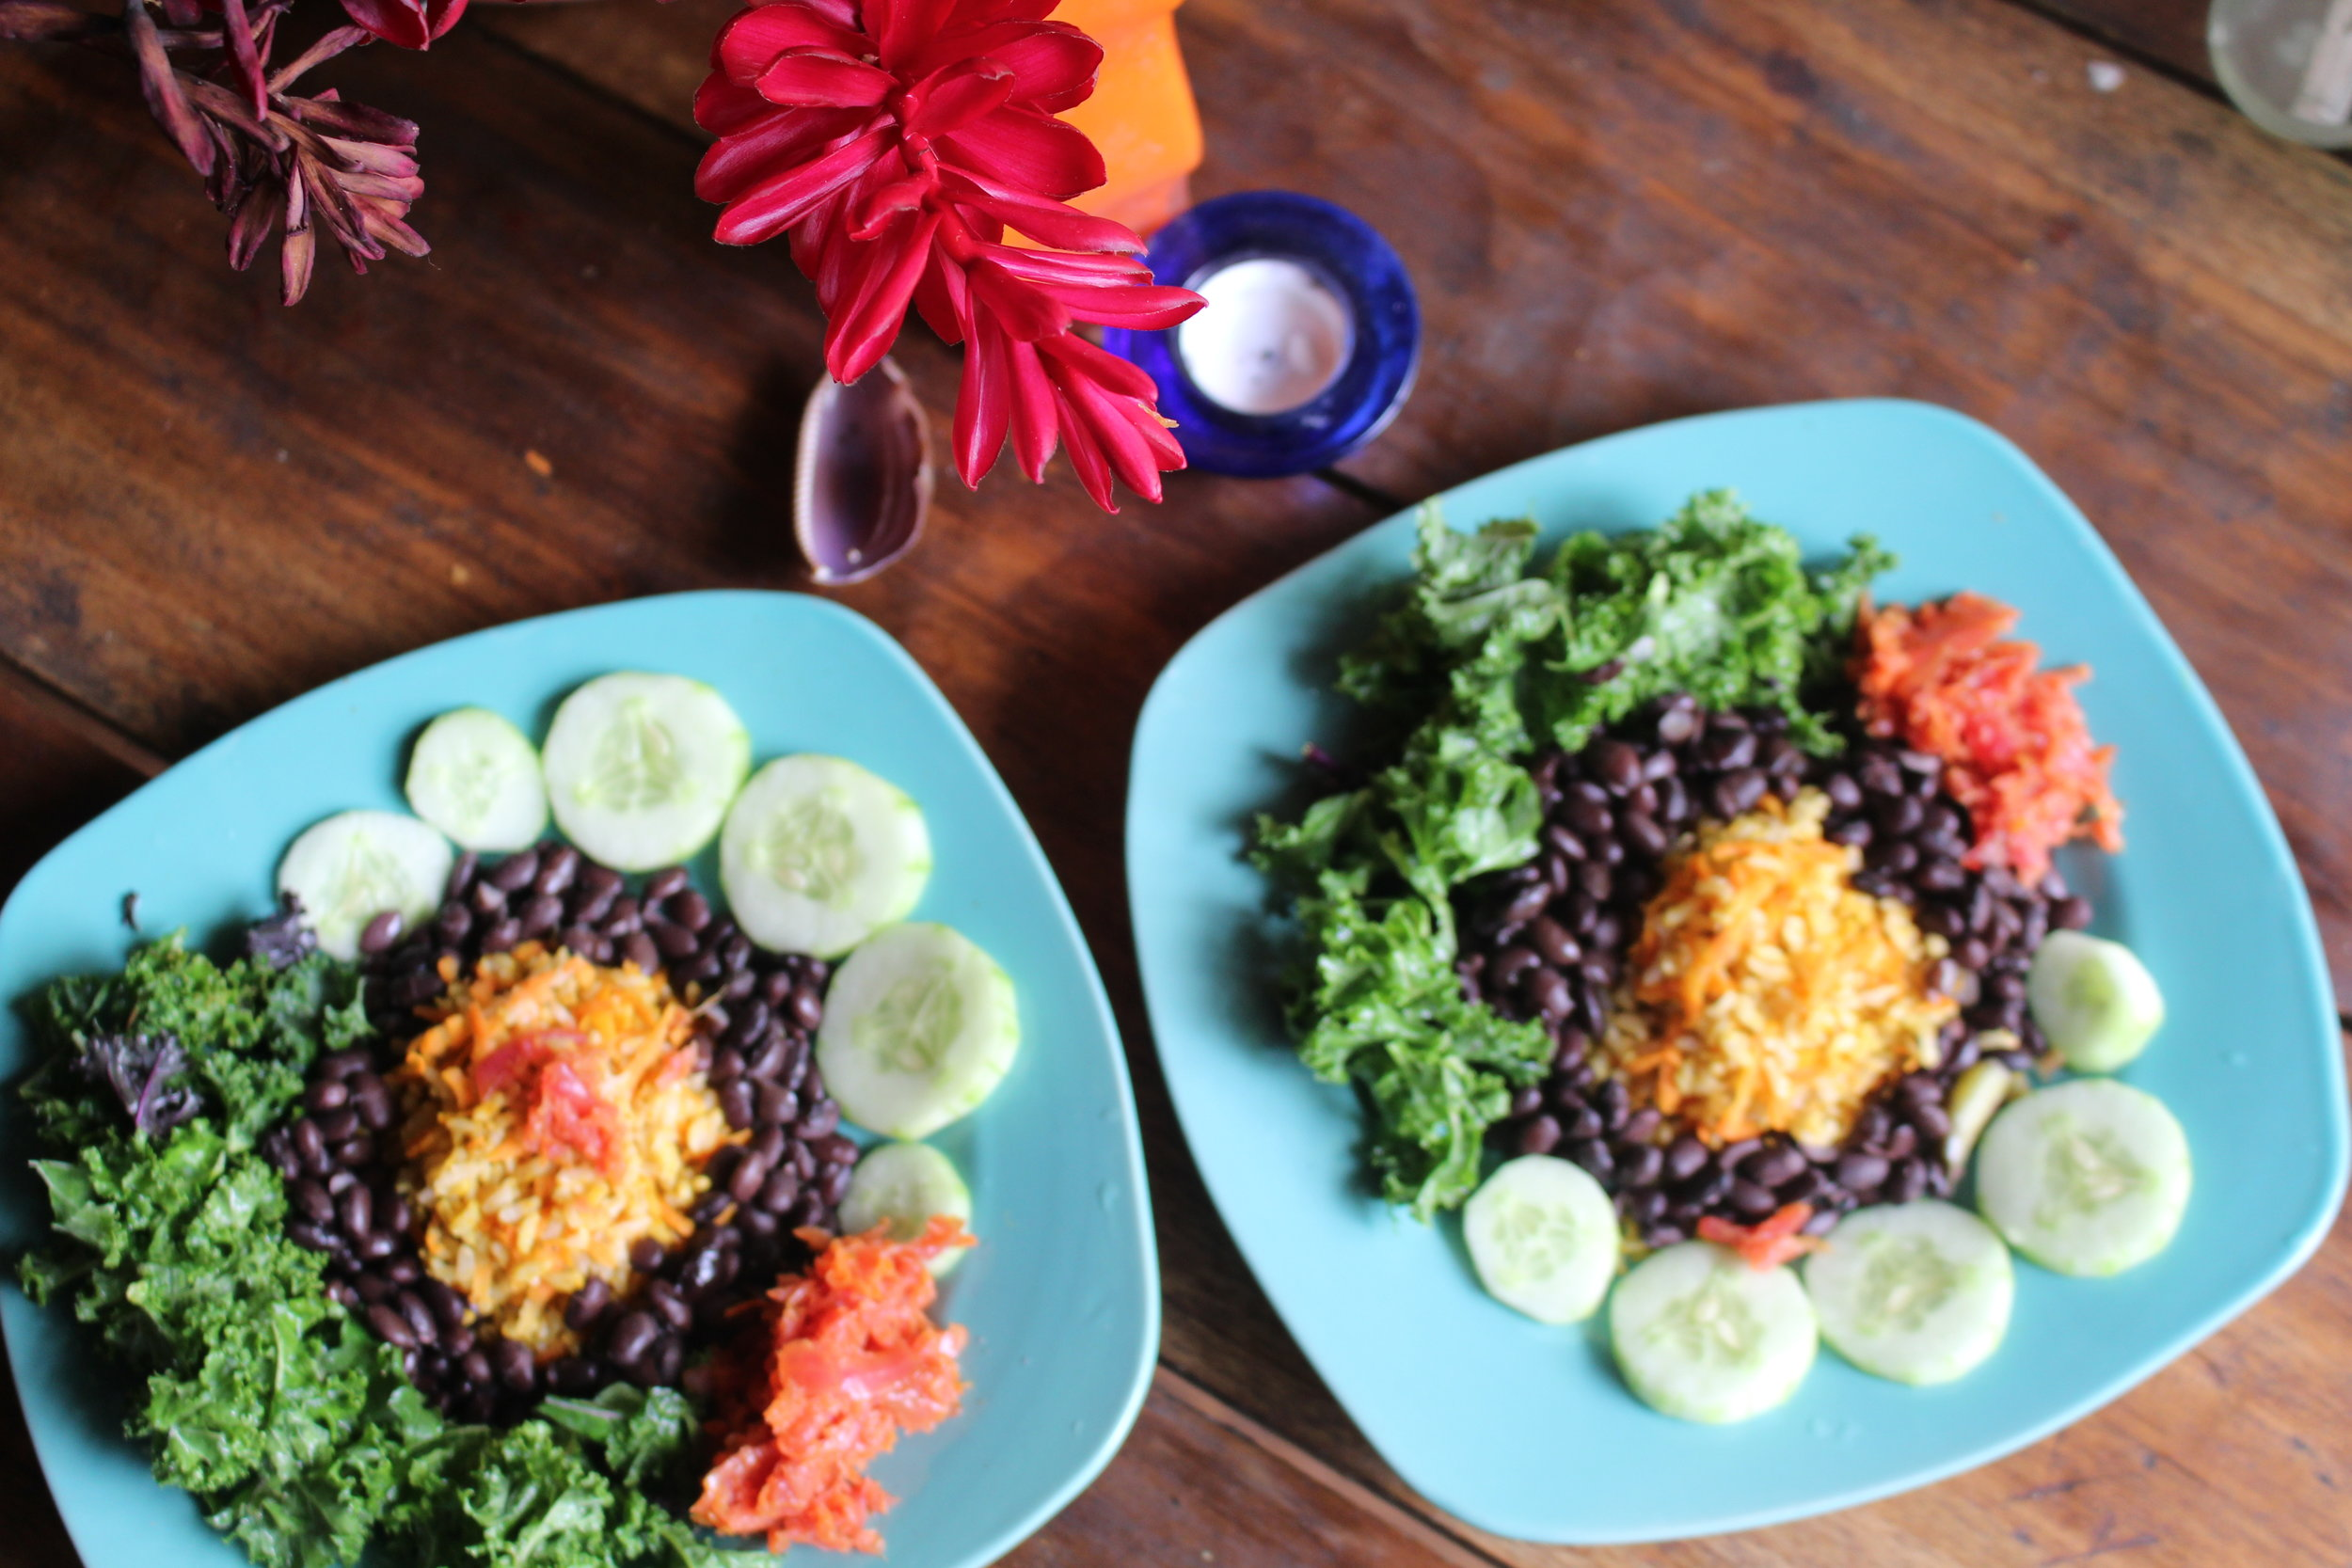 Rice & Beans - Our Staple